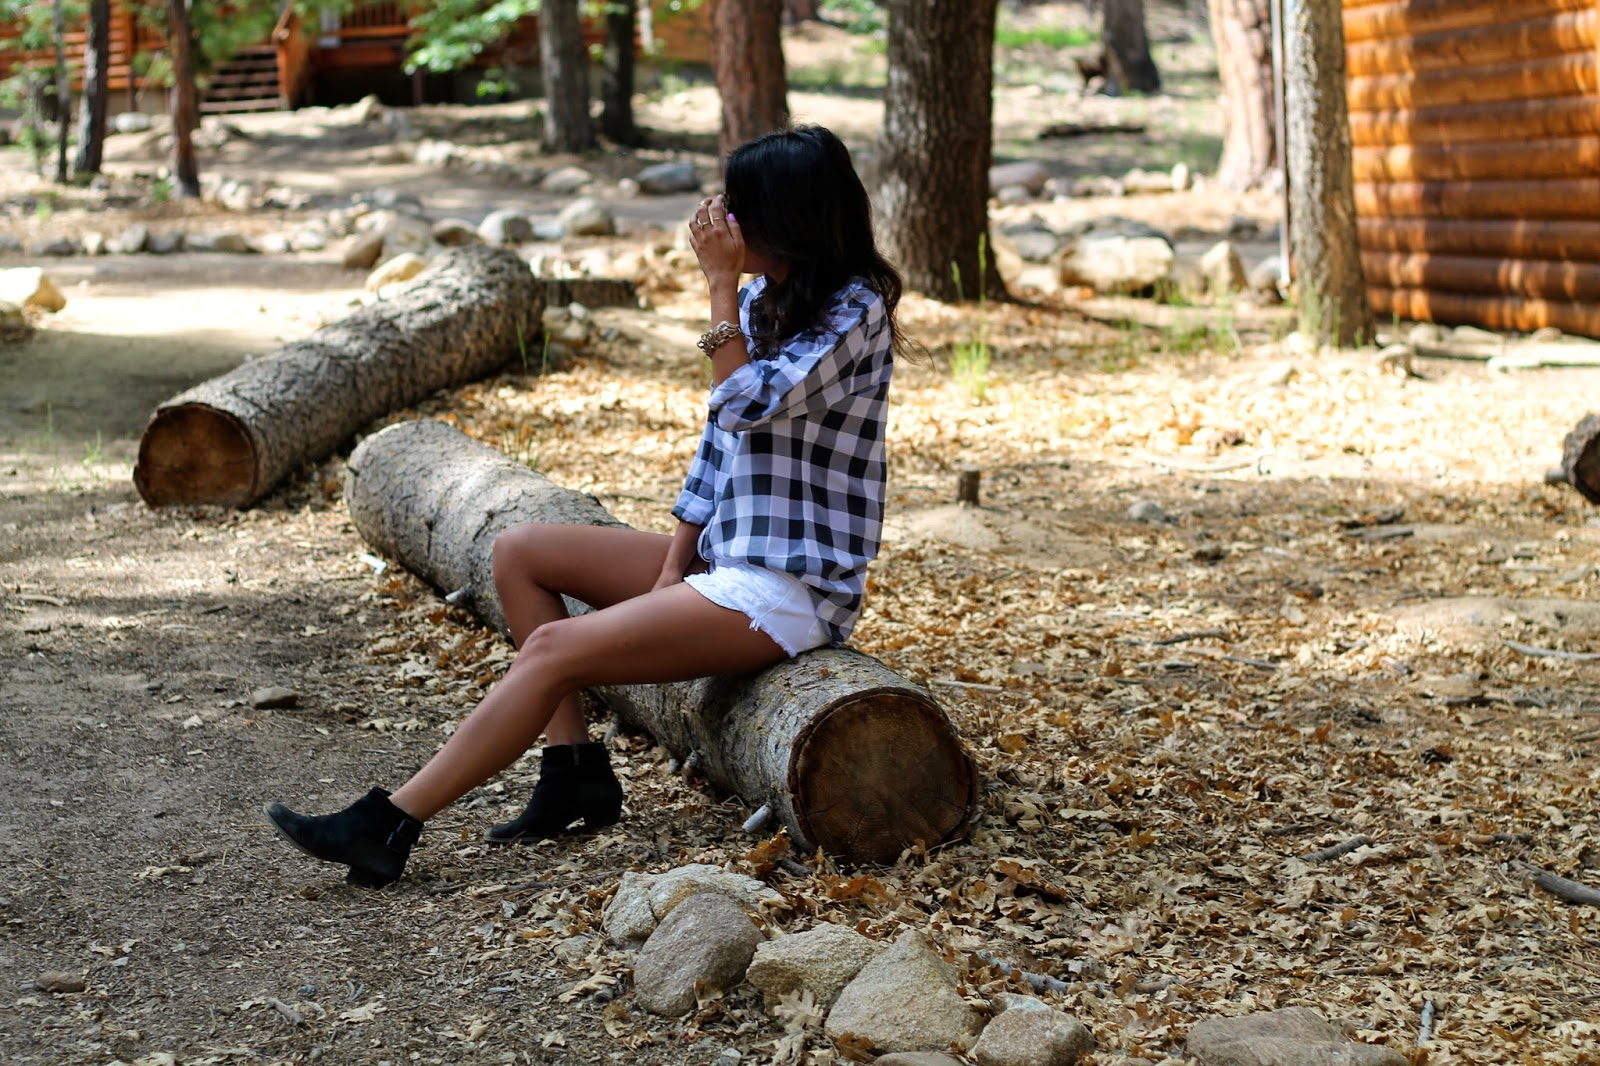 camping outfit, equipment blouse, what to wear, what is fashion, boots